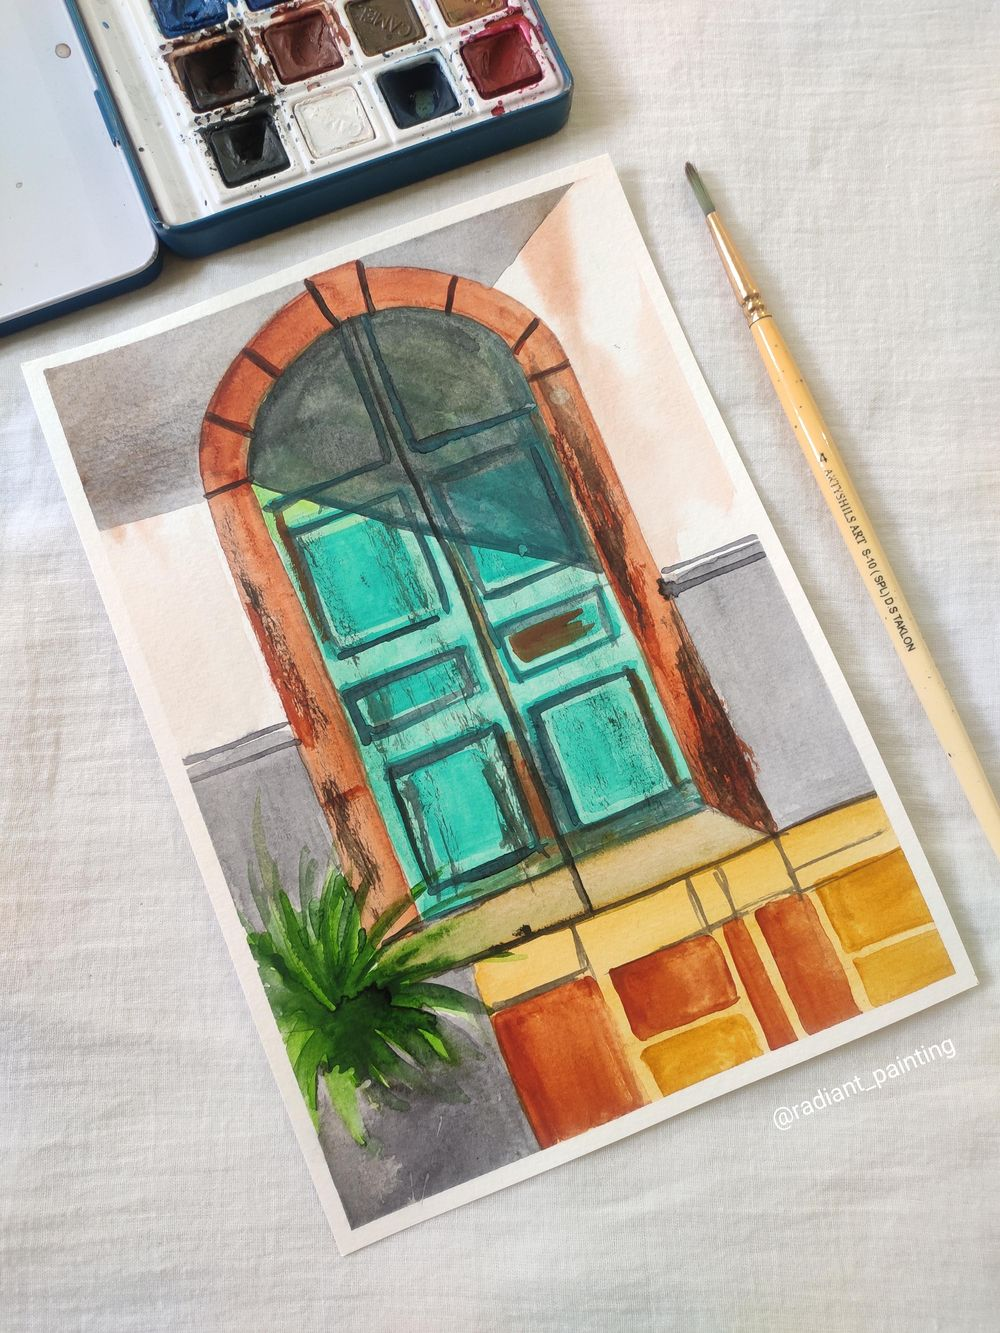 Watercolor Rustic Old Doors - image 3 - student project